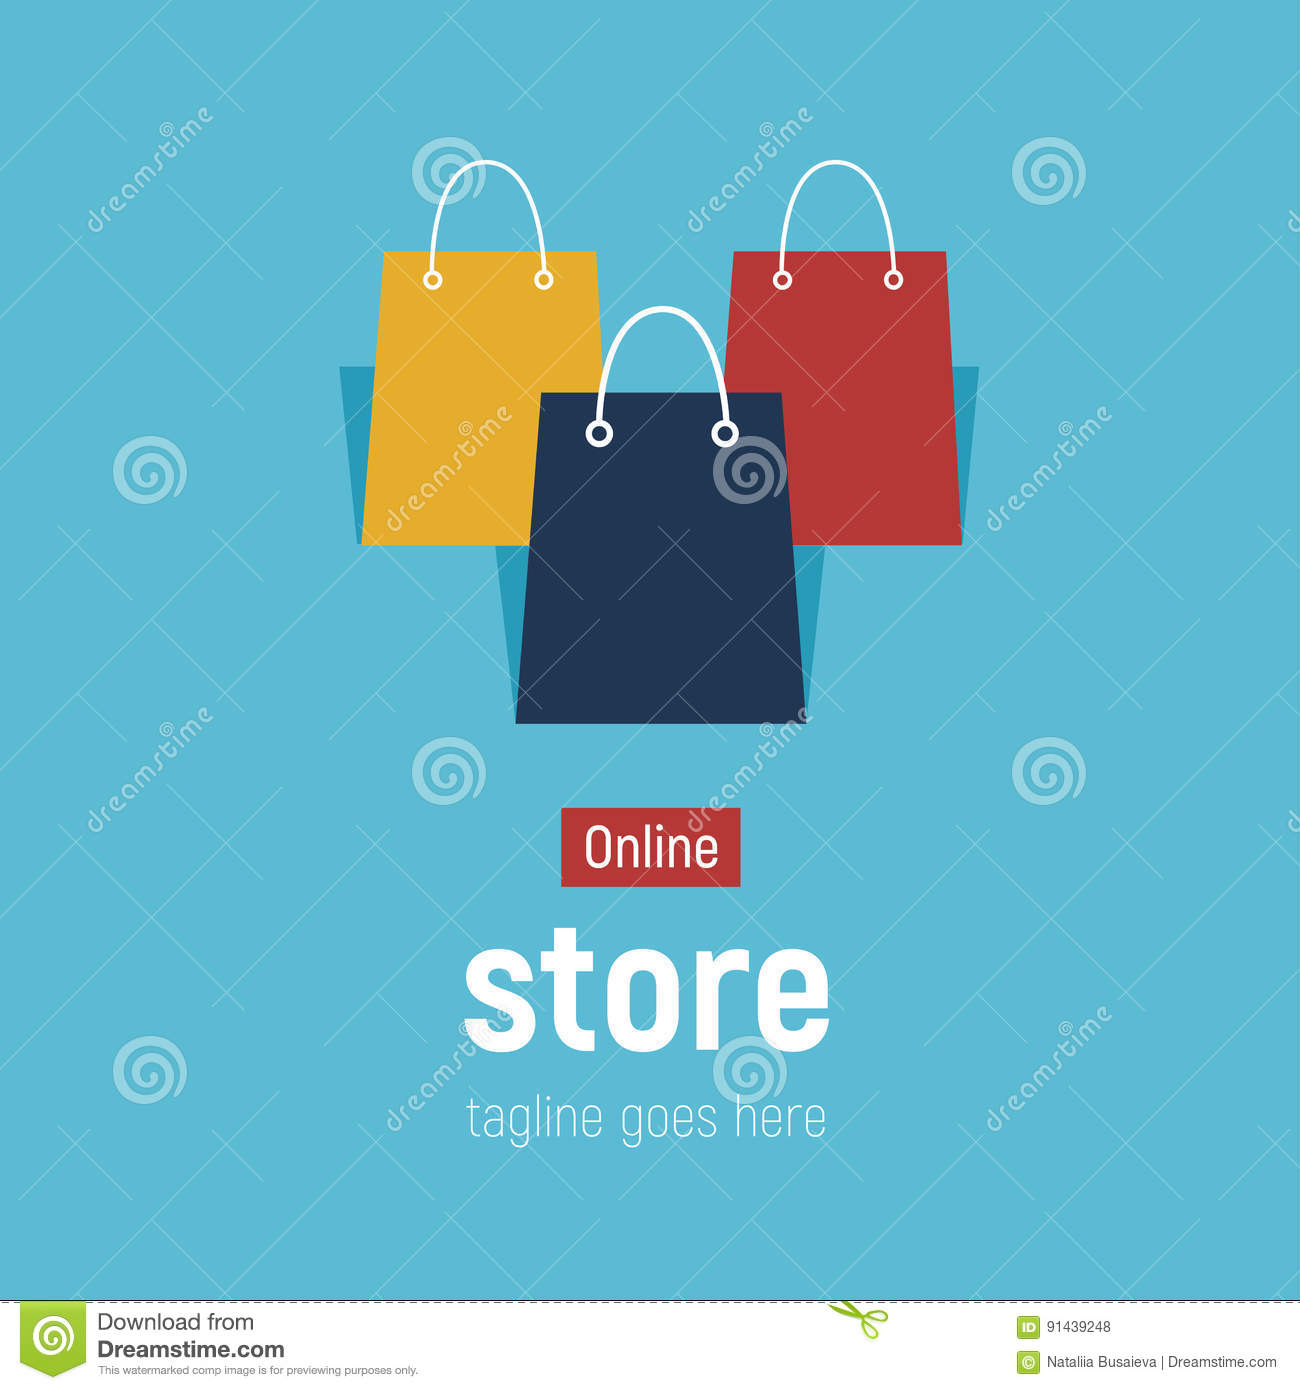 Web online shopping bags e commerce stock image for Online art stores us